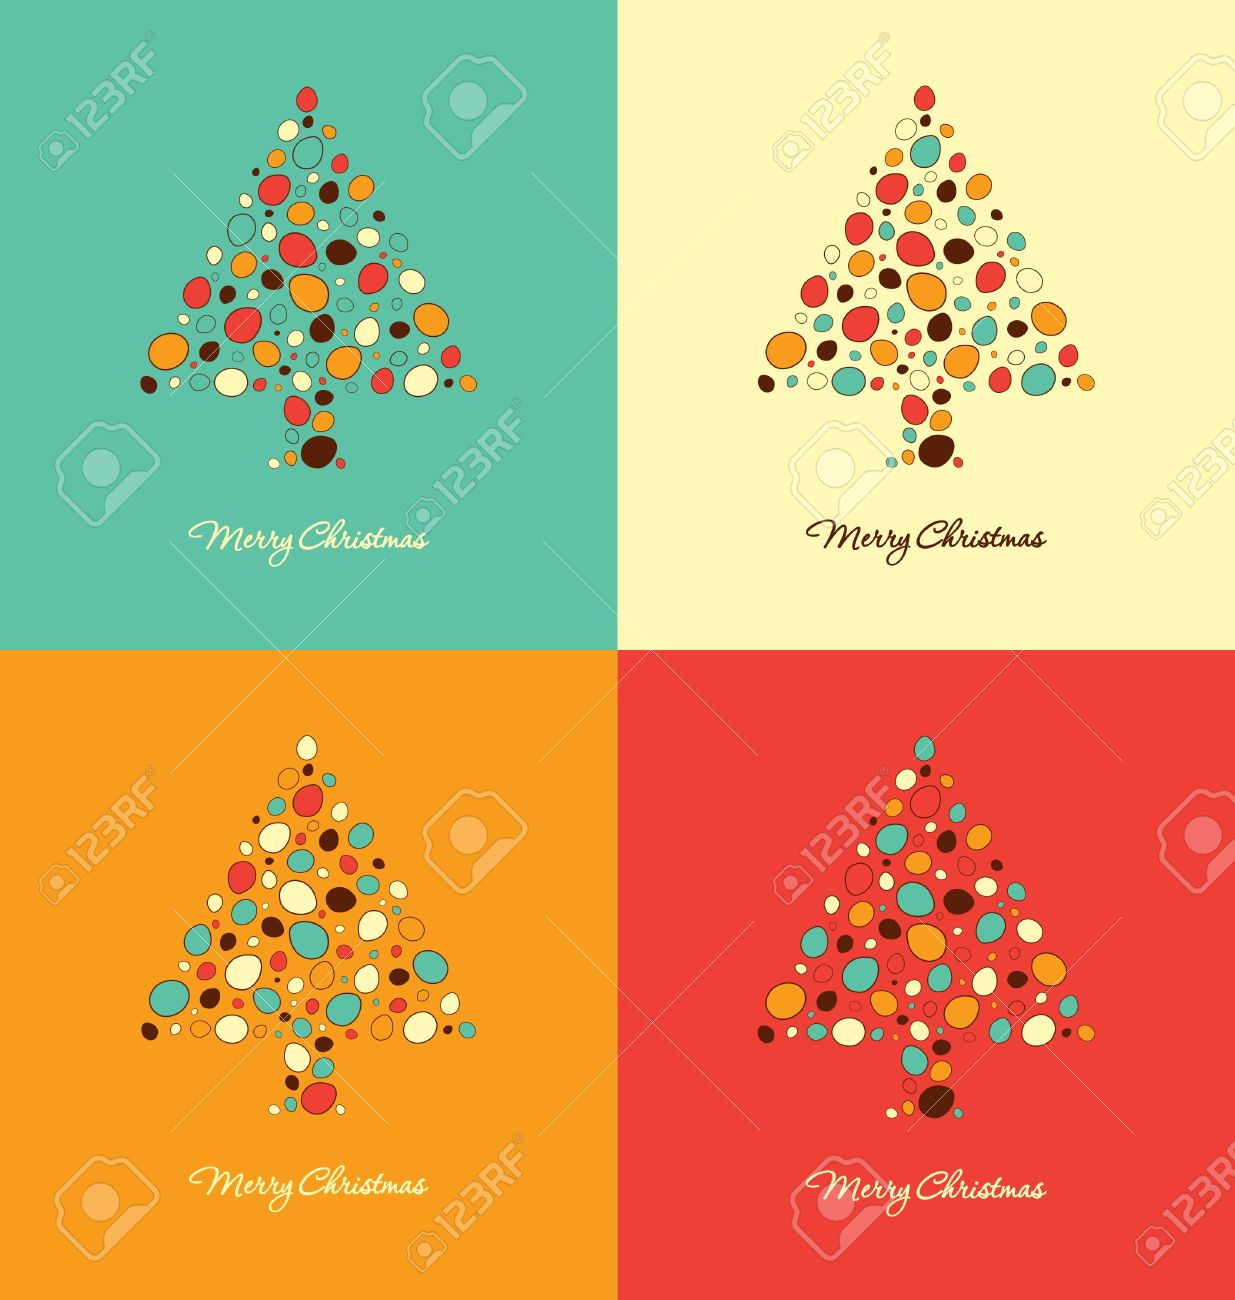 Christmas Card Design Templates  Free Christmas Card Email Templates